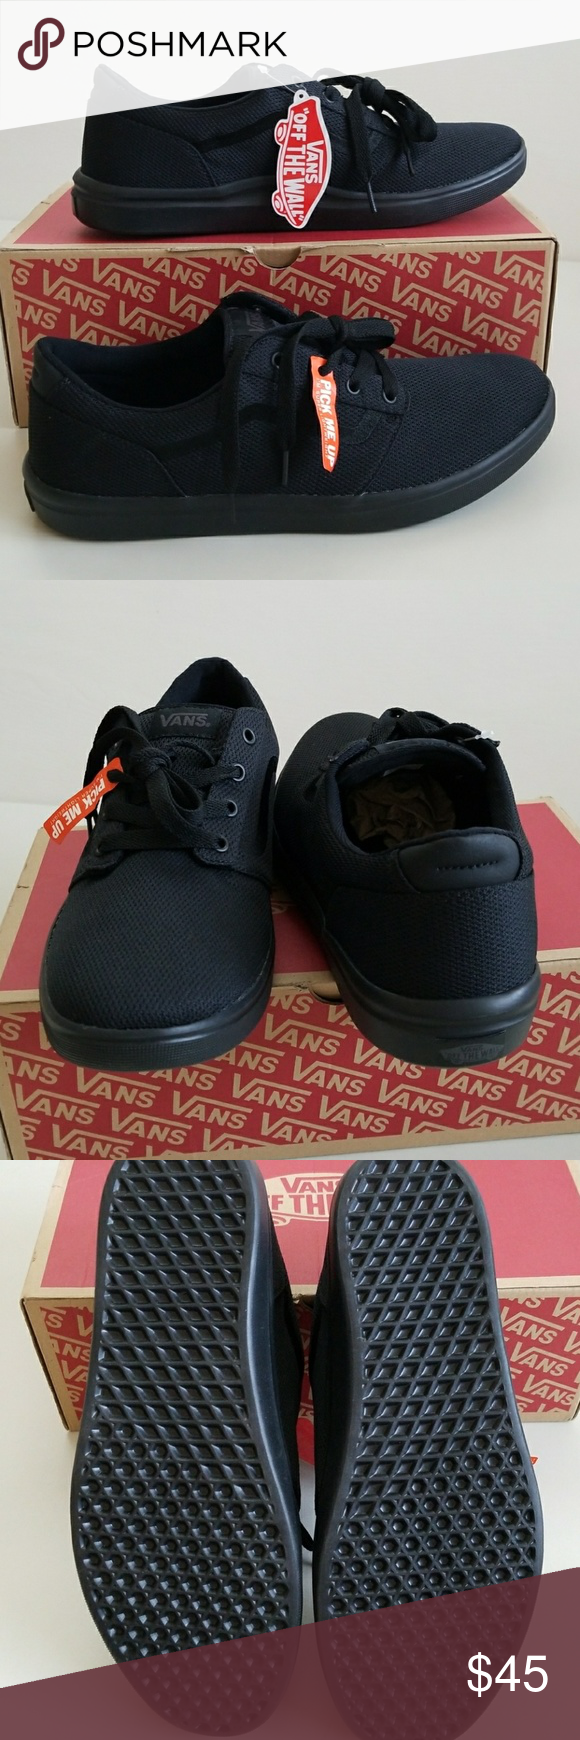 aa6b2ed6ea NWT Men s Vans Lightweight and Comfy New Vans super light and ultra cushy  footbed for all day comfort. Vans Shoes Sneakers